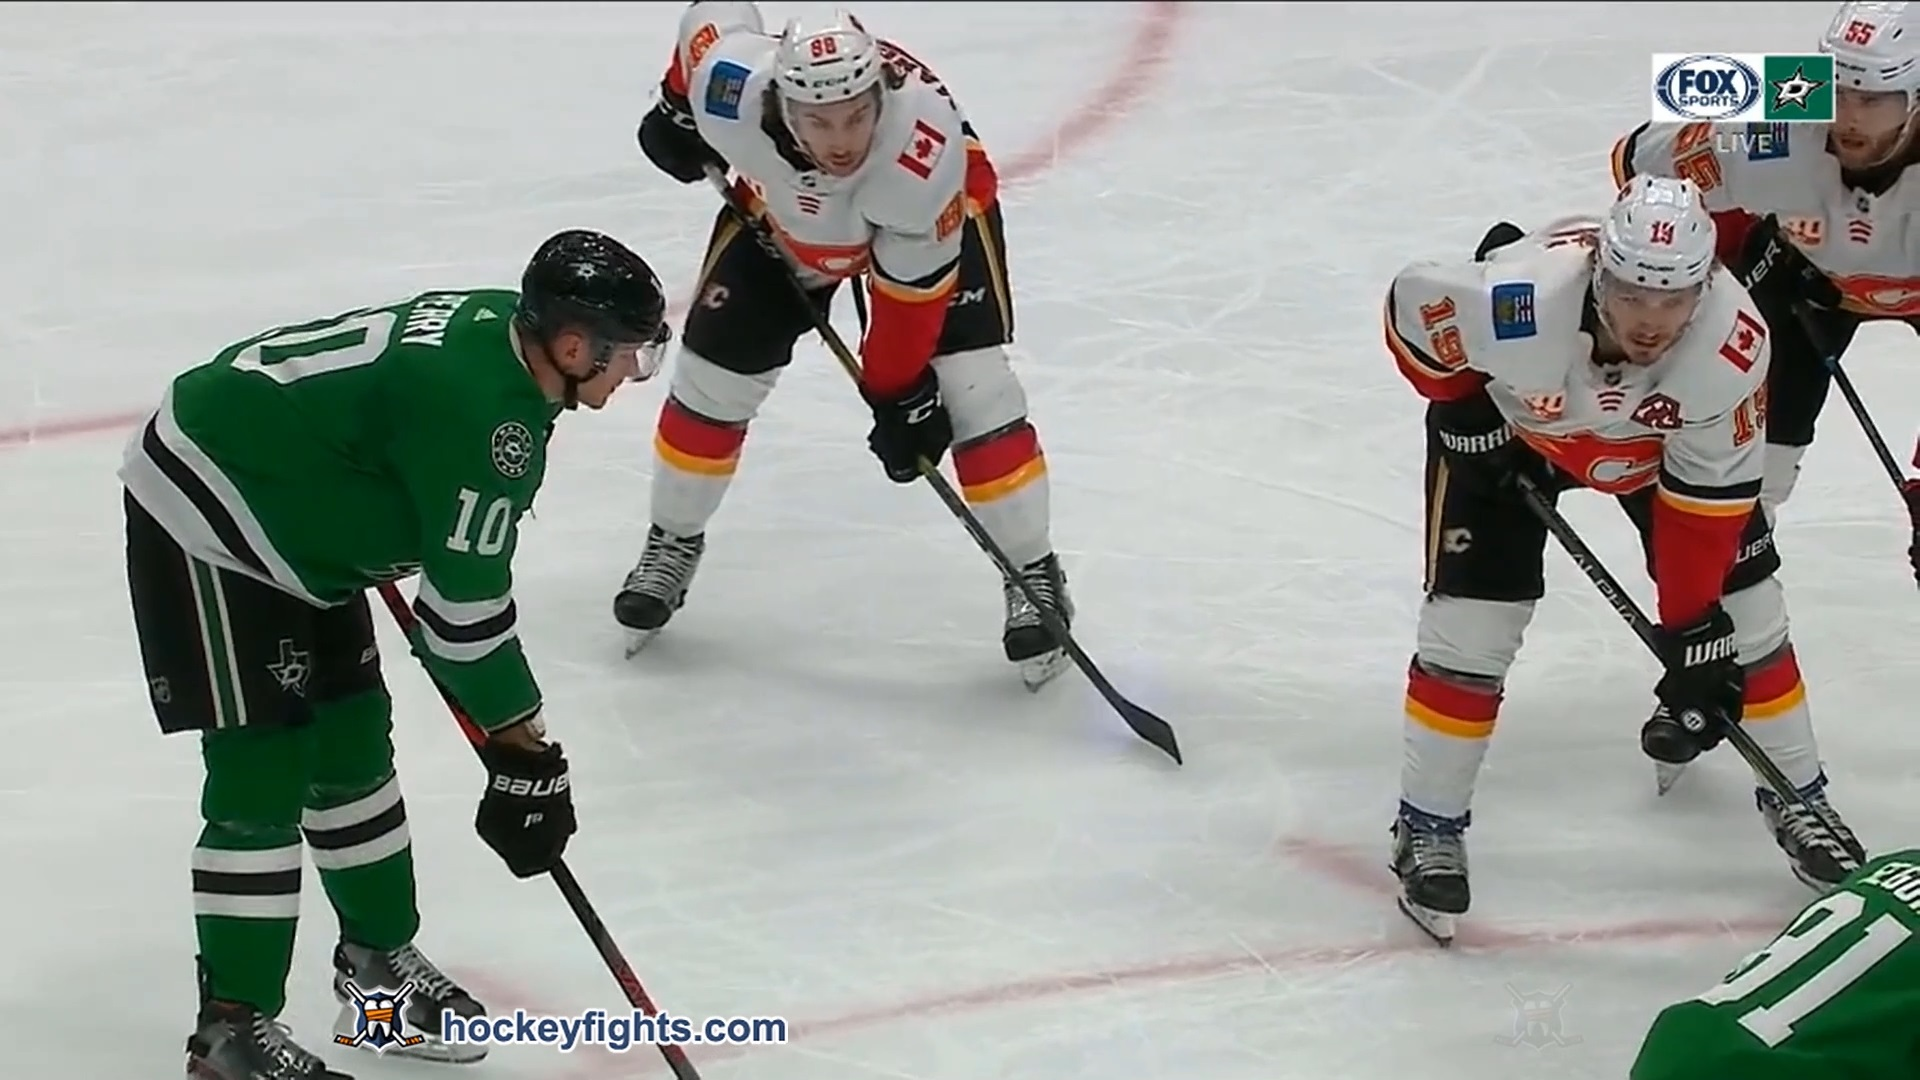 Matthew Tkachuk vs Corey Perry